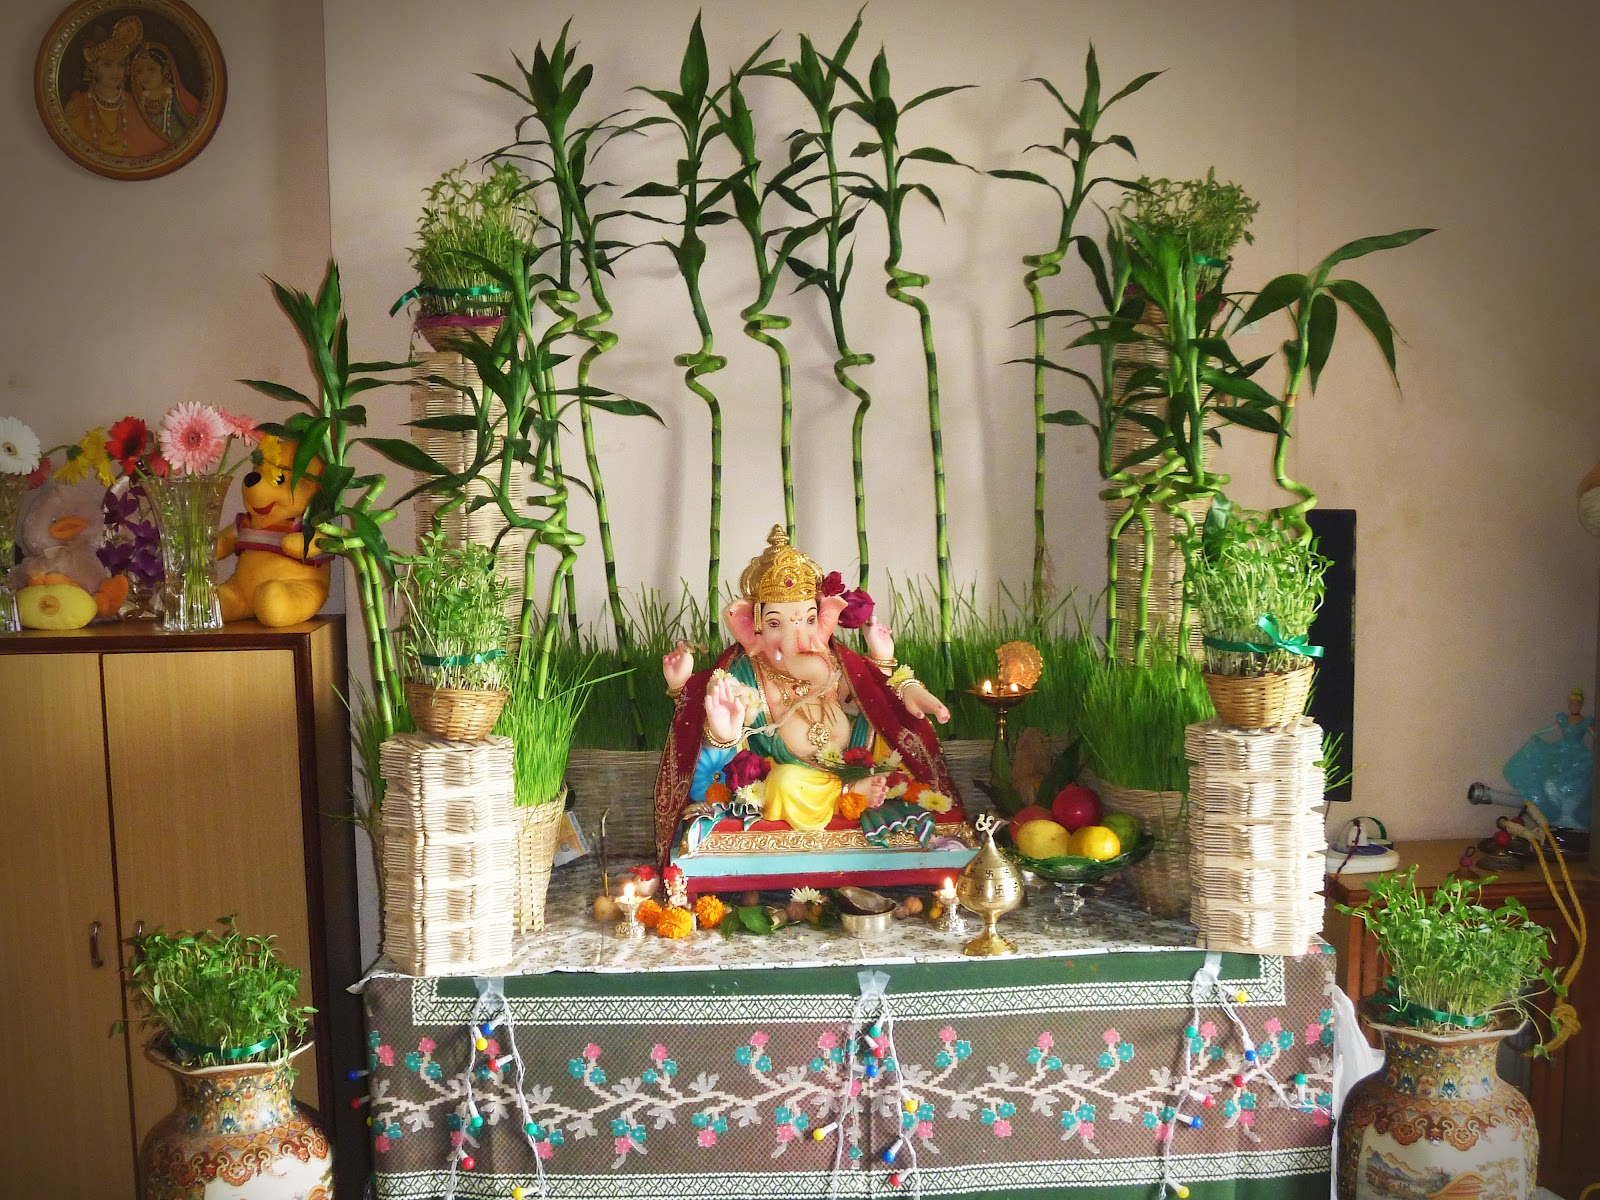 Ganesh chaturthi decoration ideas for home for Home decorations images